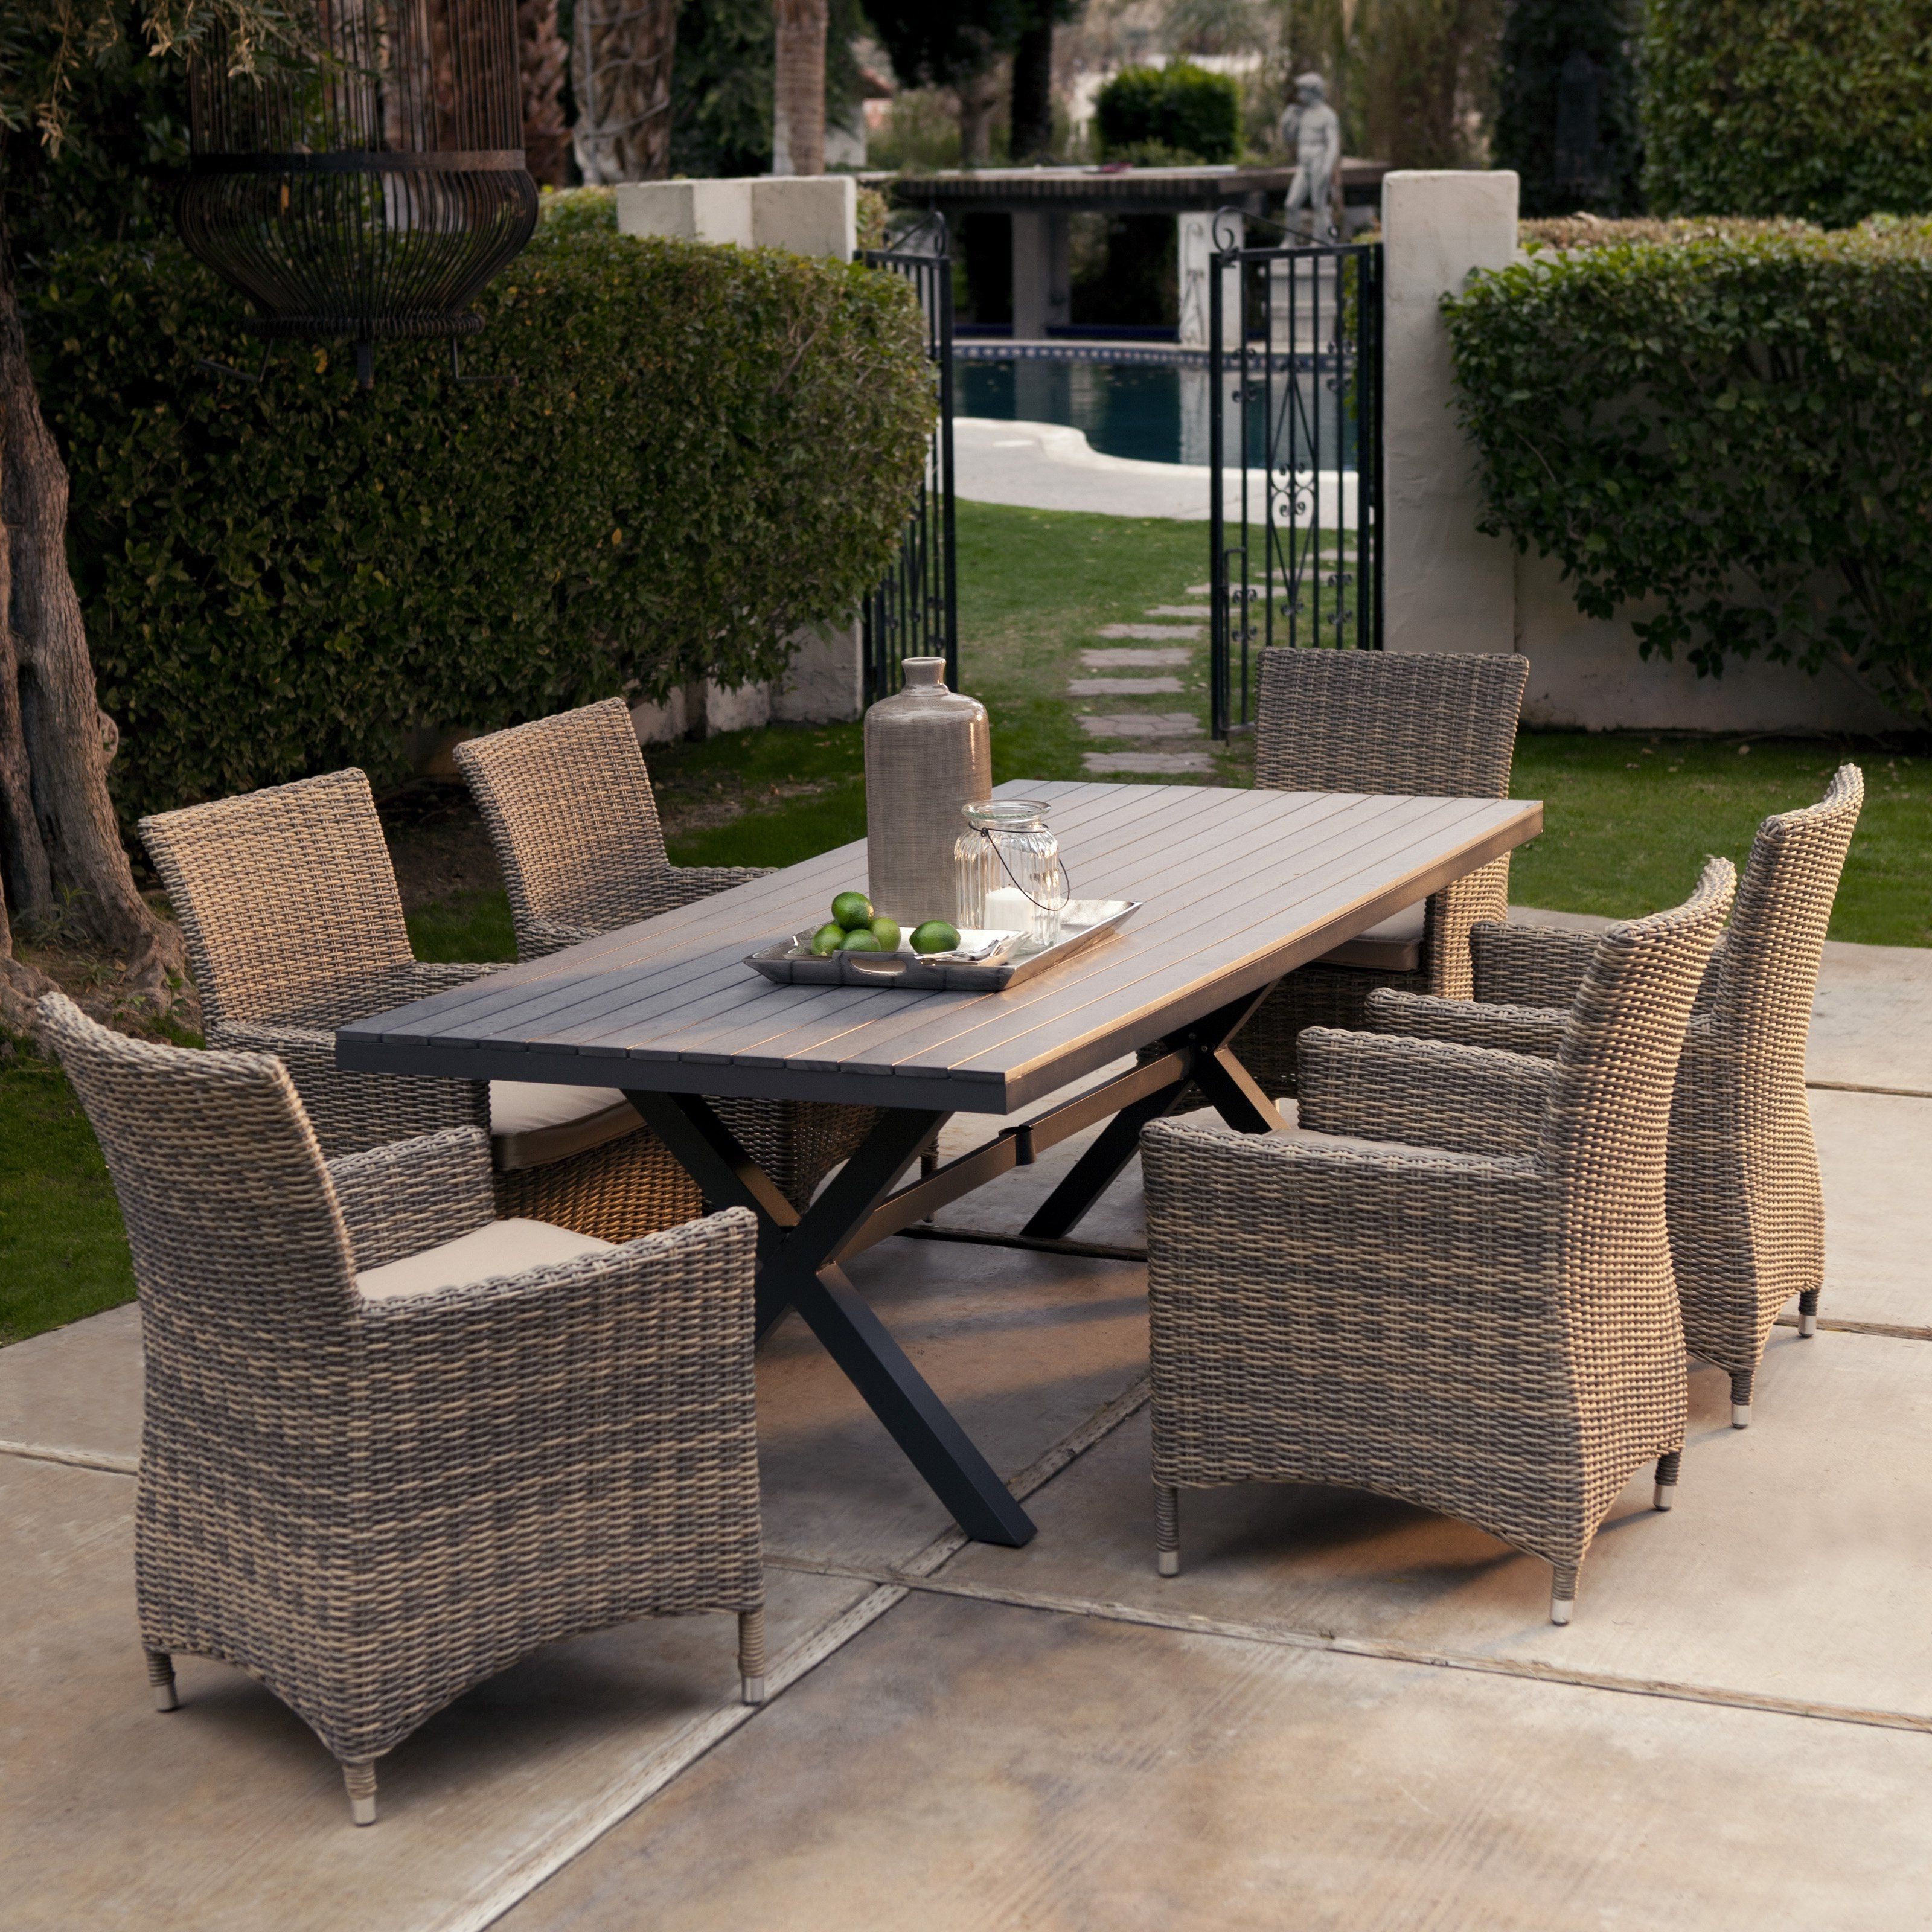 Most Current Bella All Weather Wicker Patio Dining Set – Seats 6 – Patio Dining For Outdoor Dining Table And Chairs Sets (View 16 of 25)